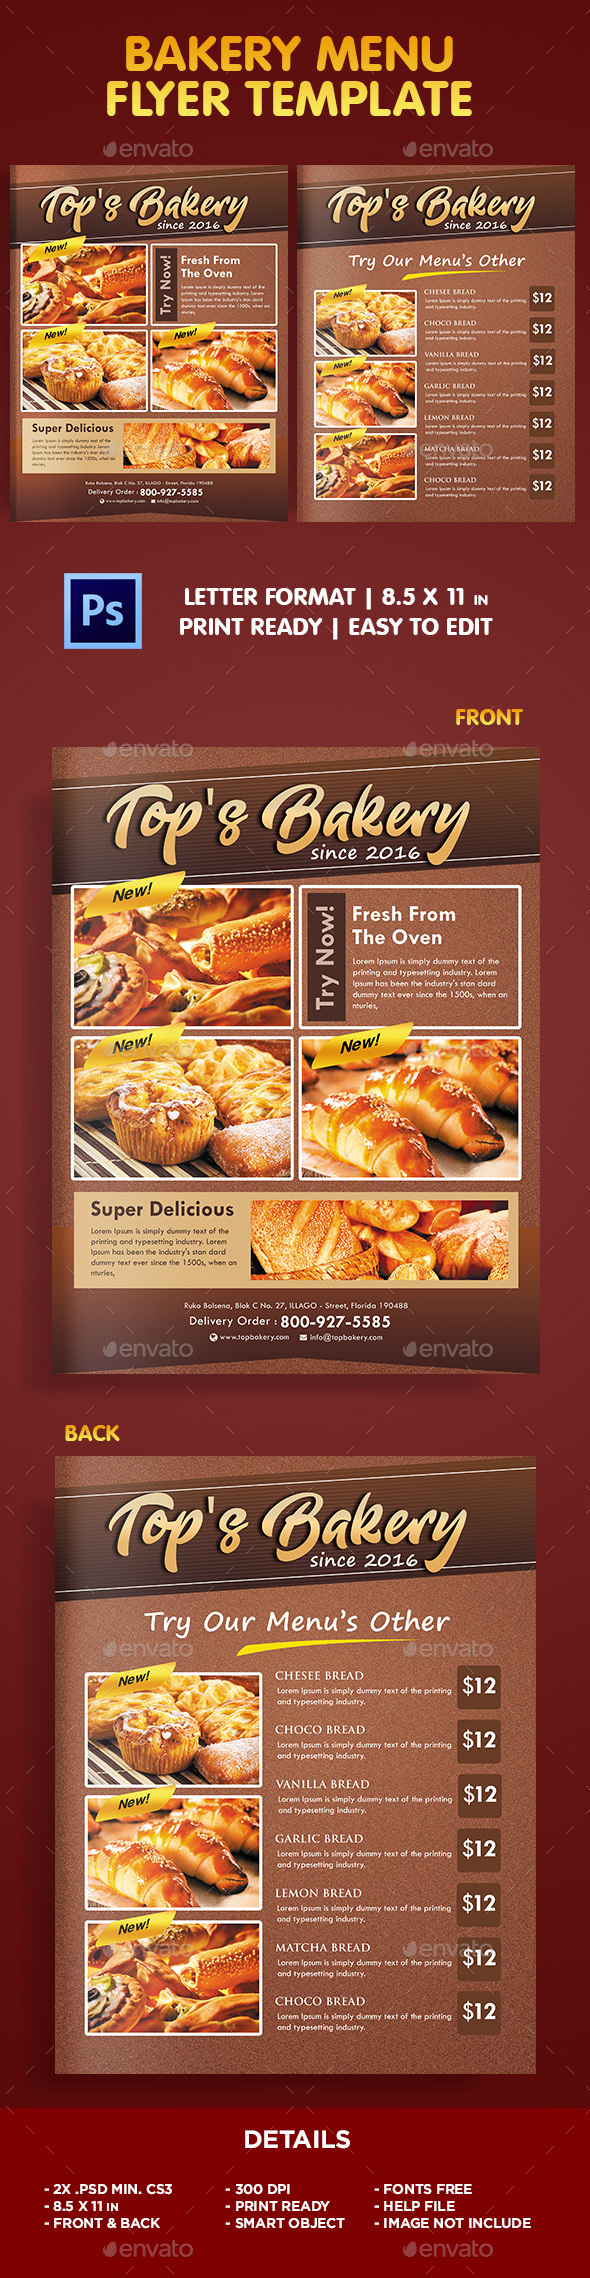 Bakery menu flyer template by ivanjoys19 graphicriver for Bakery brochure template free